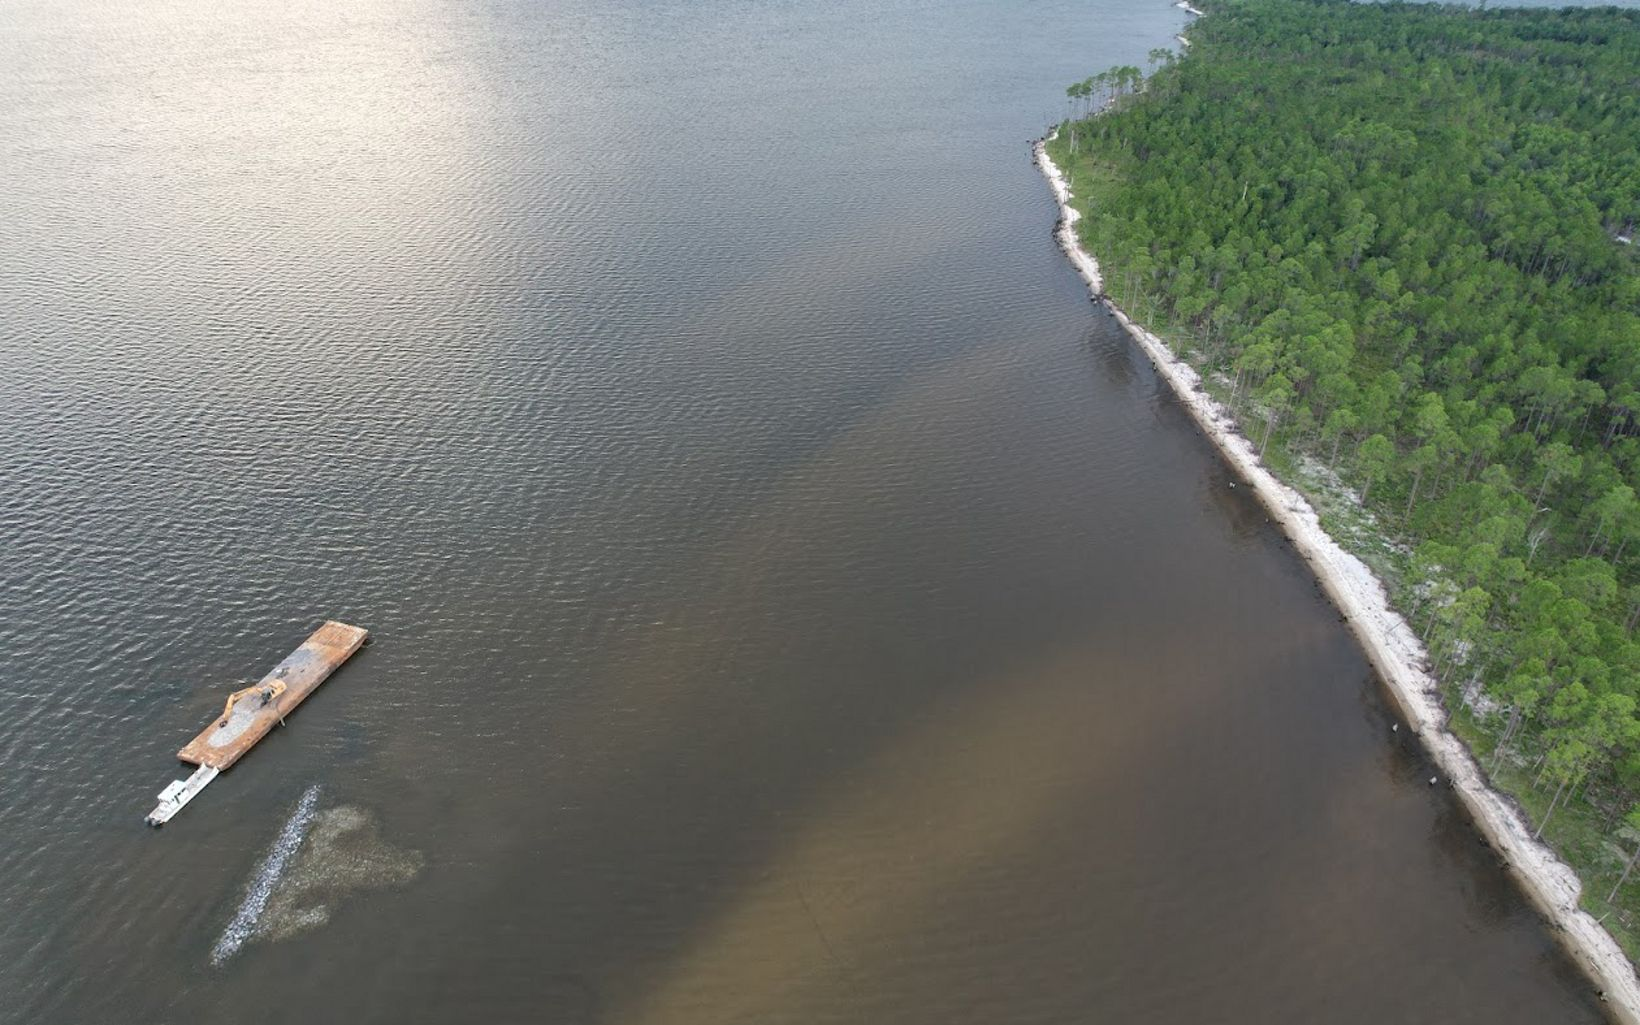 Aerial view of barge with nearly-completed oyster reef under construction.